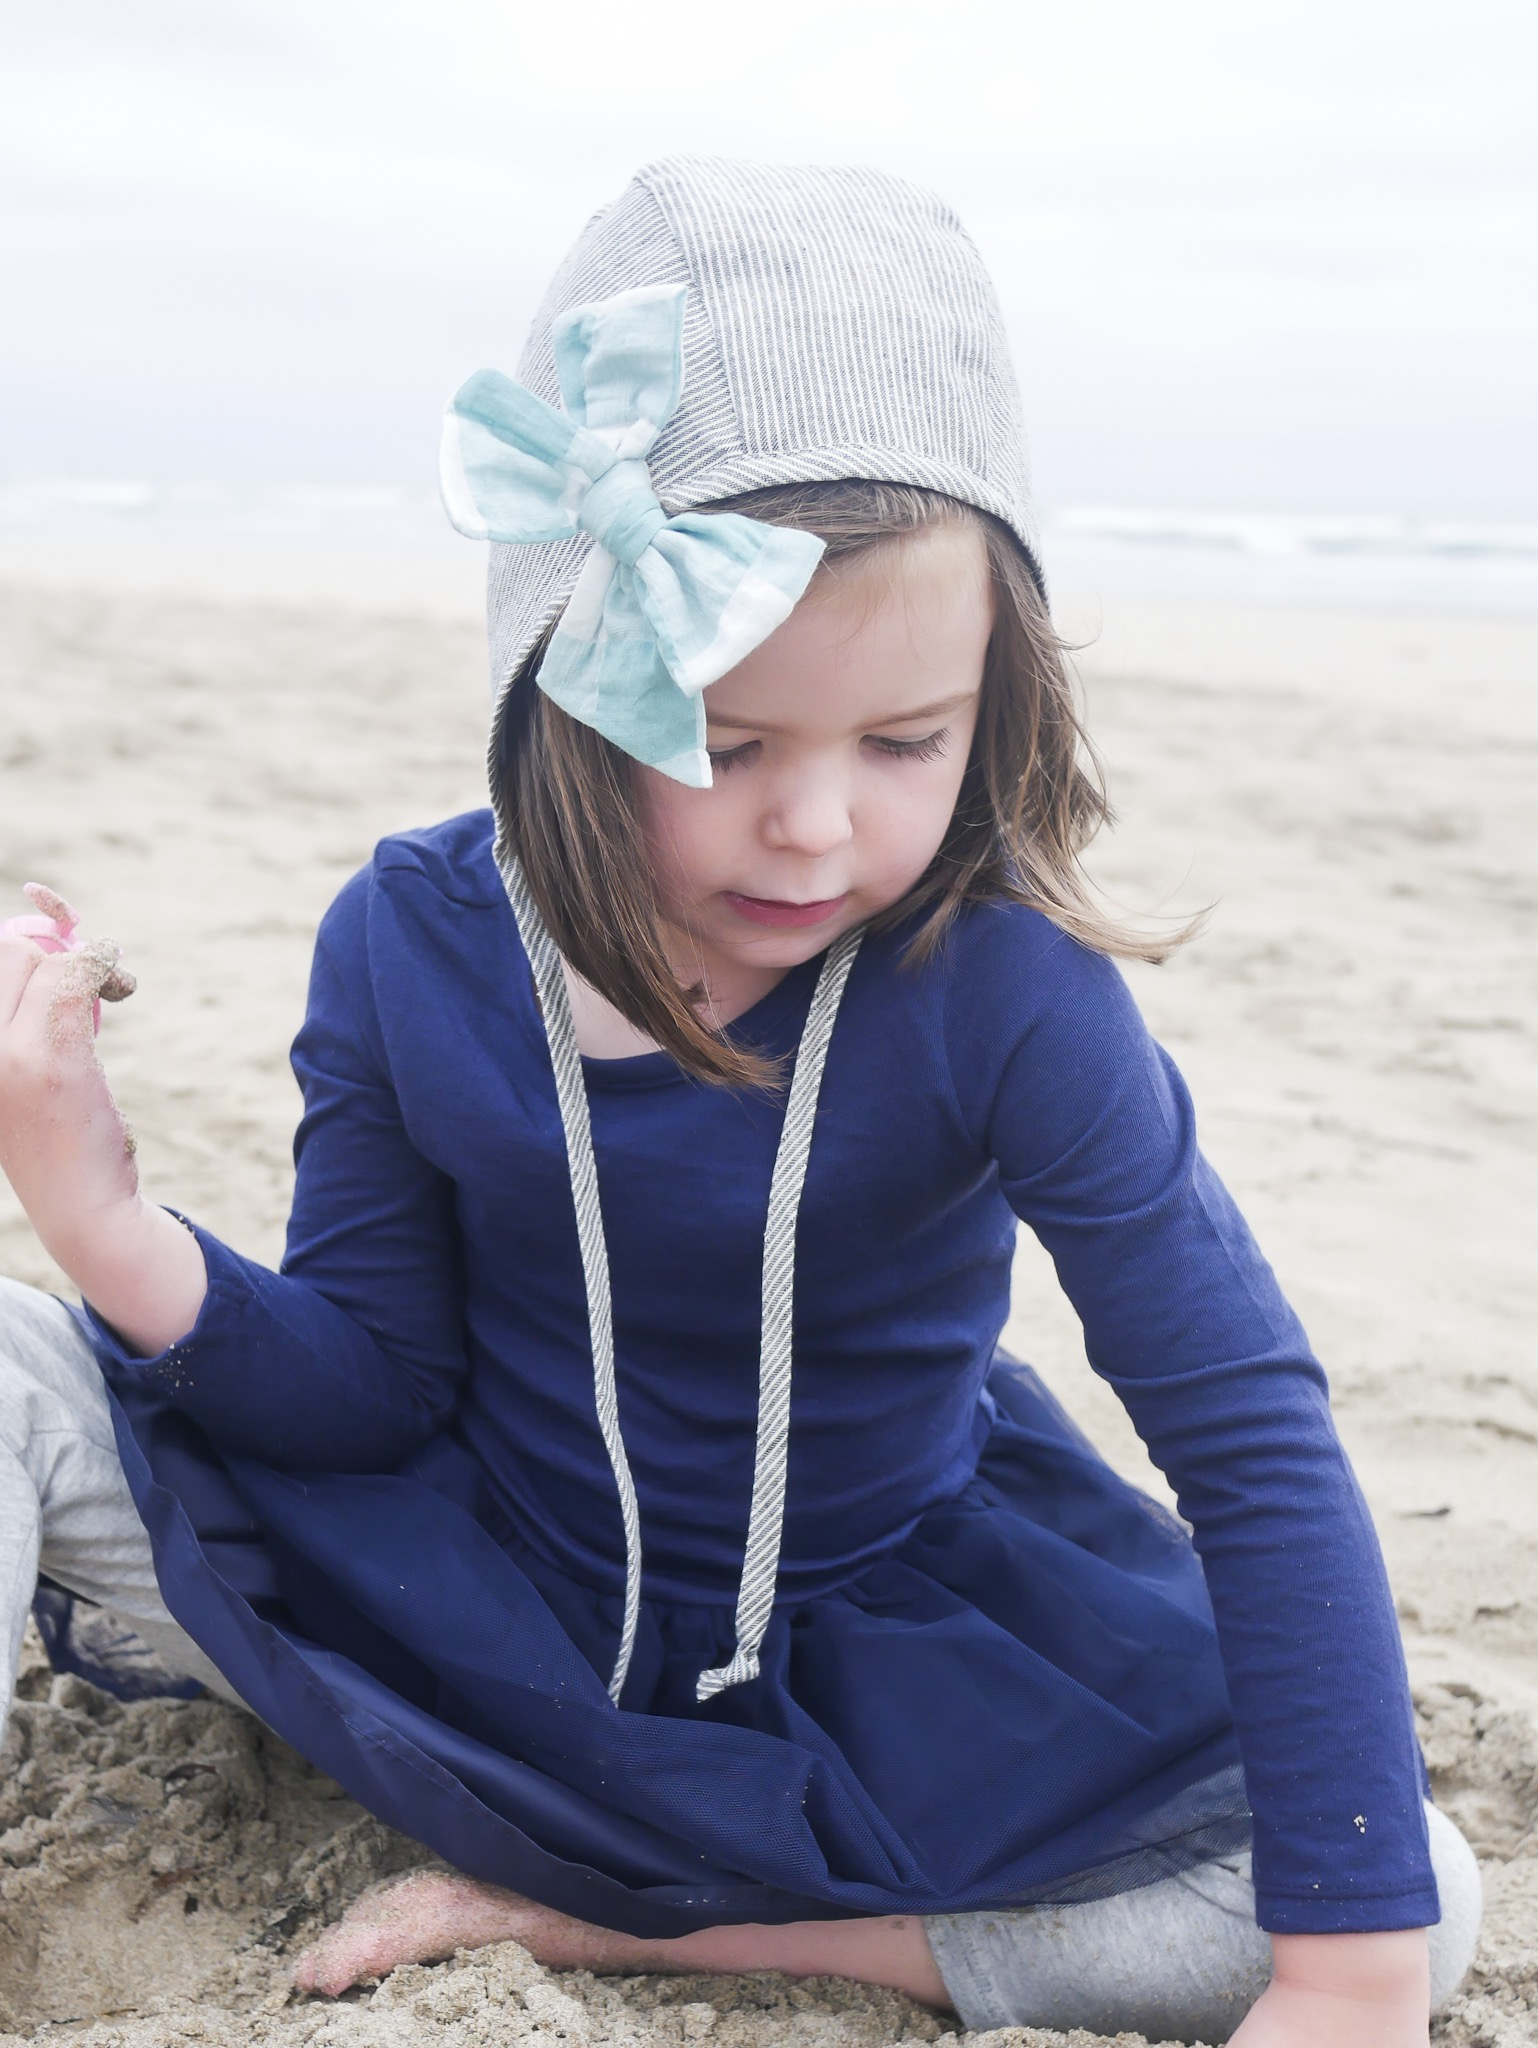 The Oregon Coast beaches are a mild but year-round perfect vacation spot when traveling with kids